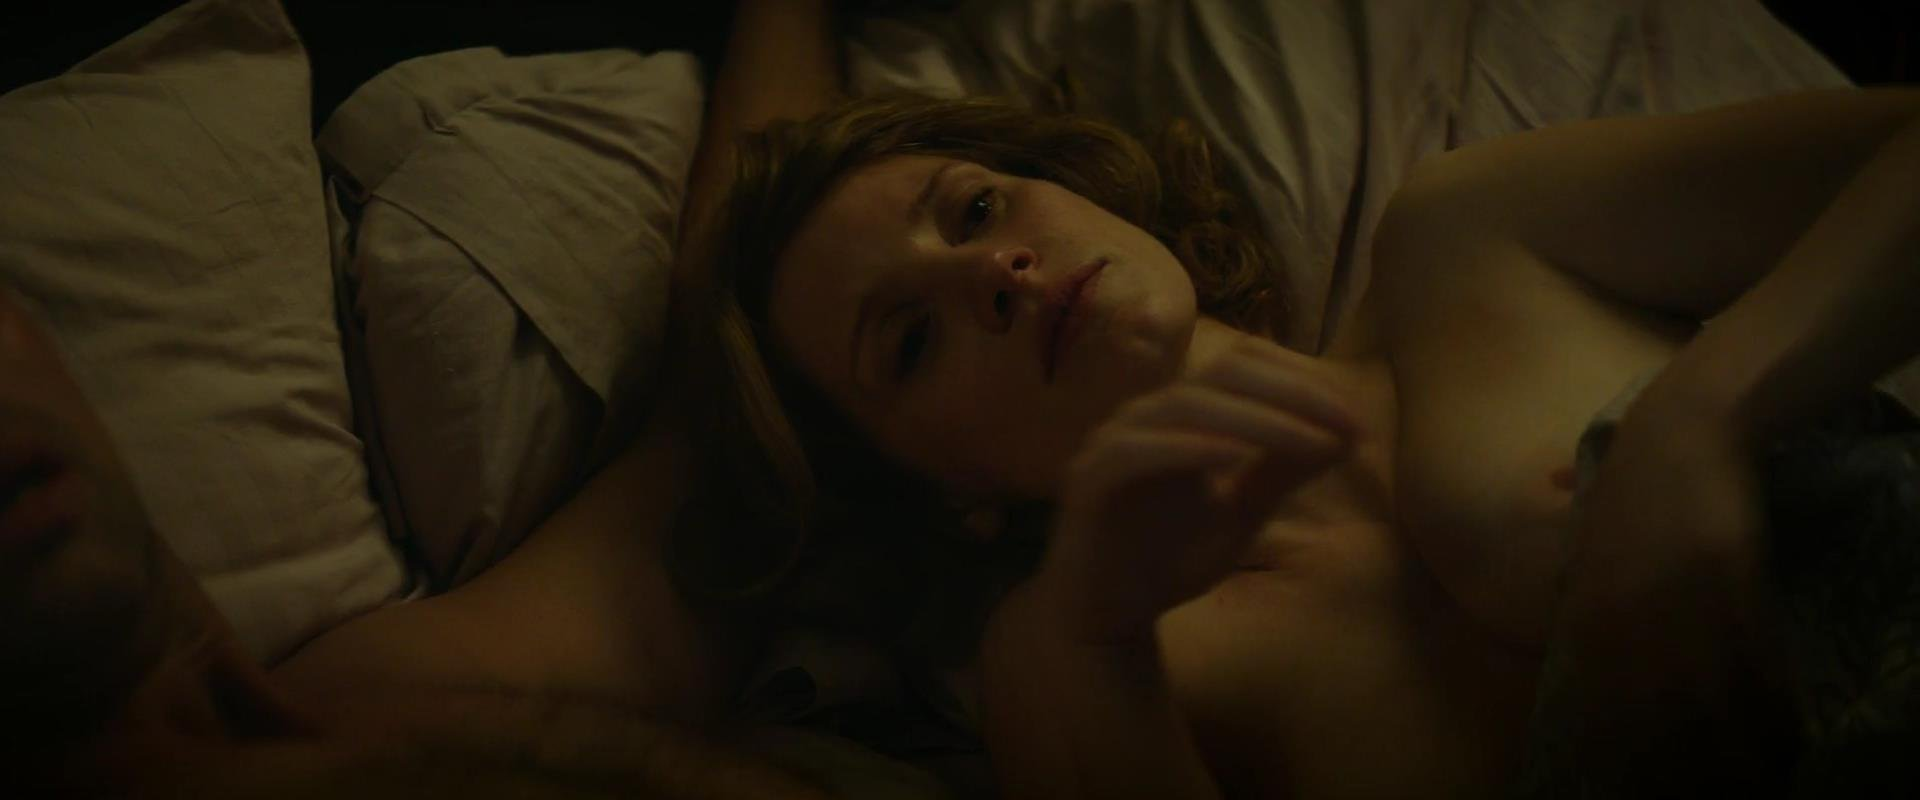 Jessica Chastain Nude Images photo 30